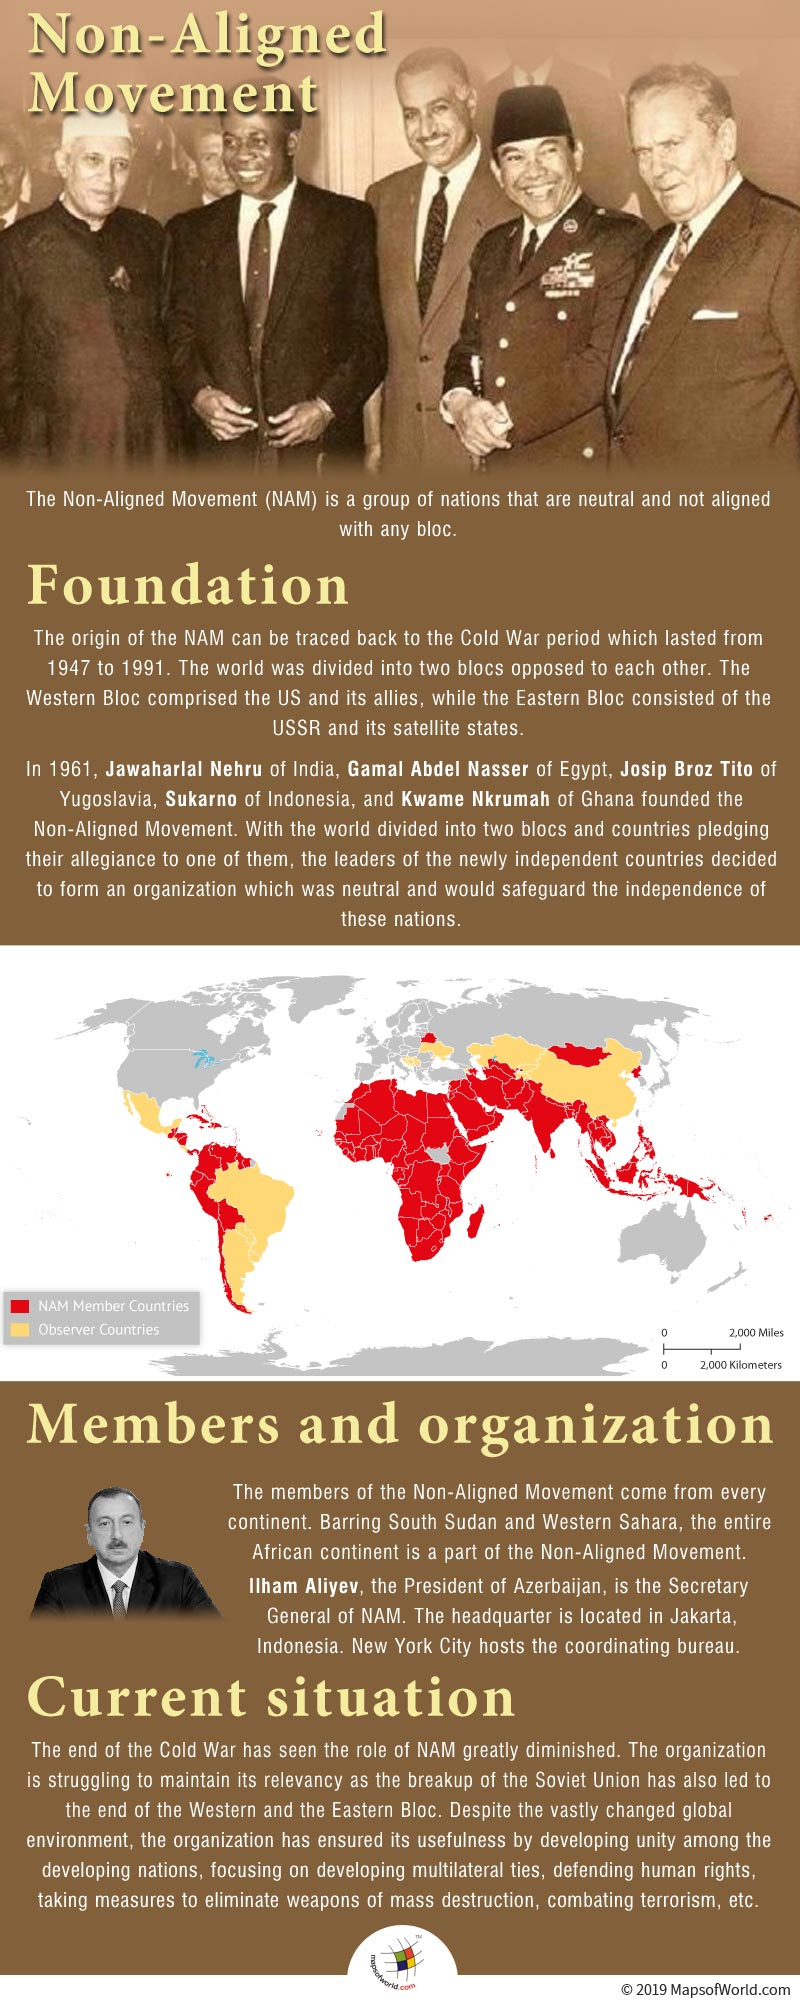 Infographic Showing Details on Non-Aligned Movement